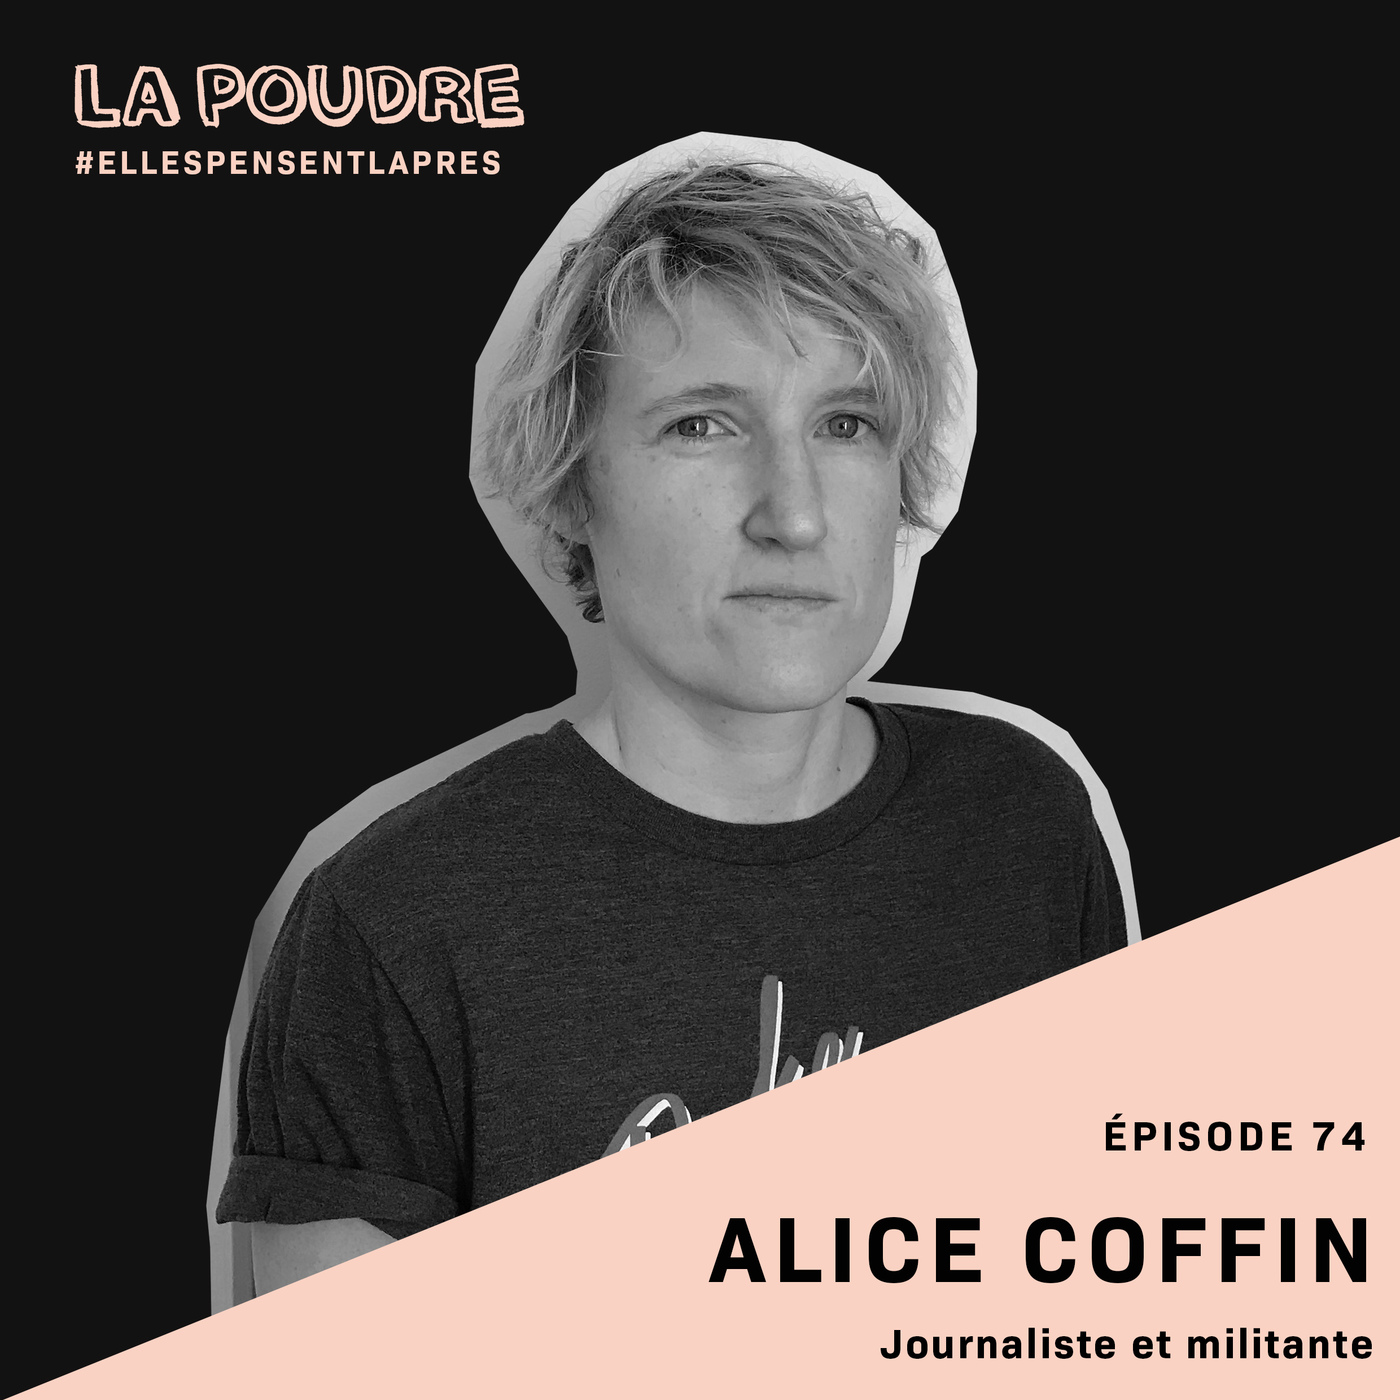 Épisode 74 - Alice Coffin